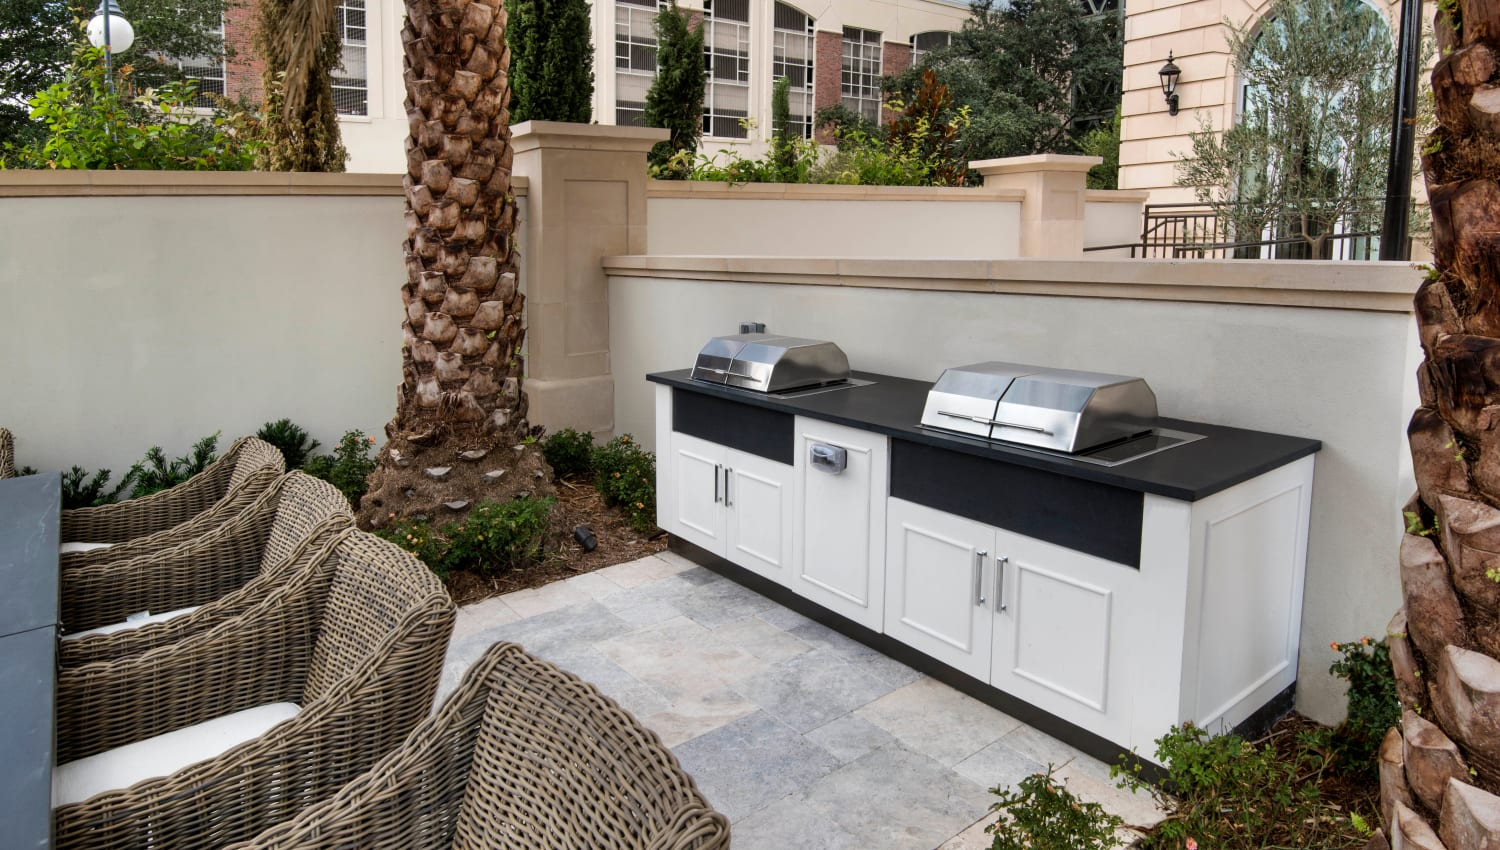 Barbecue area with gas grills at Olympus Harbour Island in Tampa, Florida